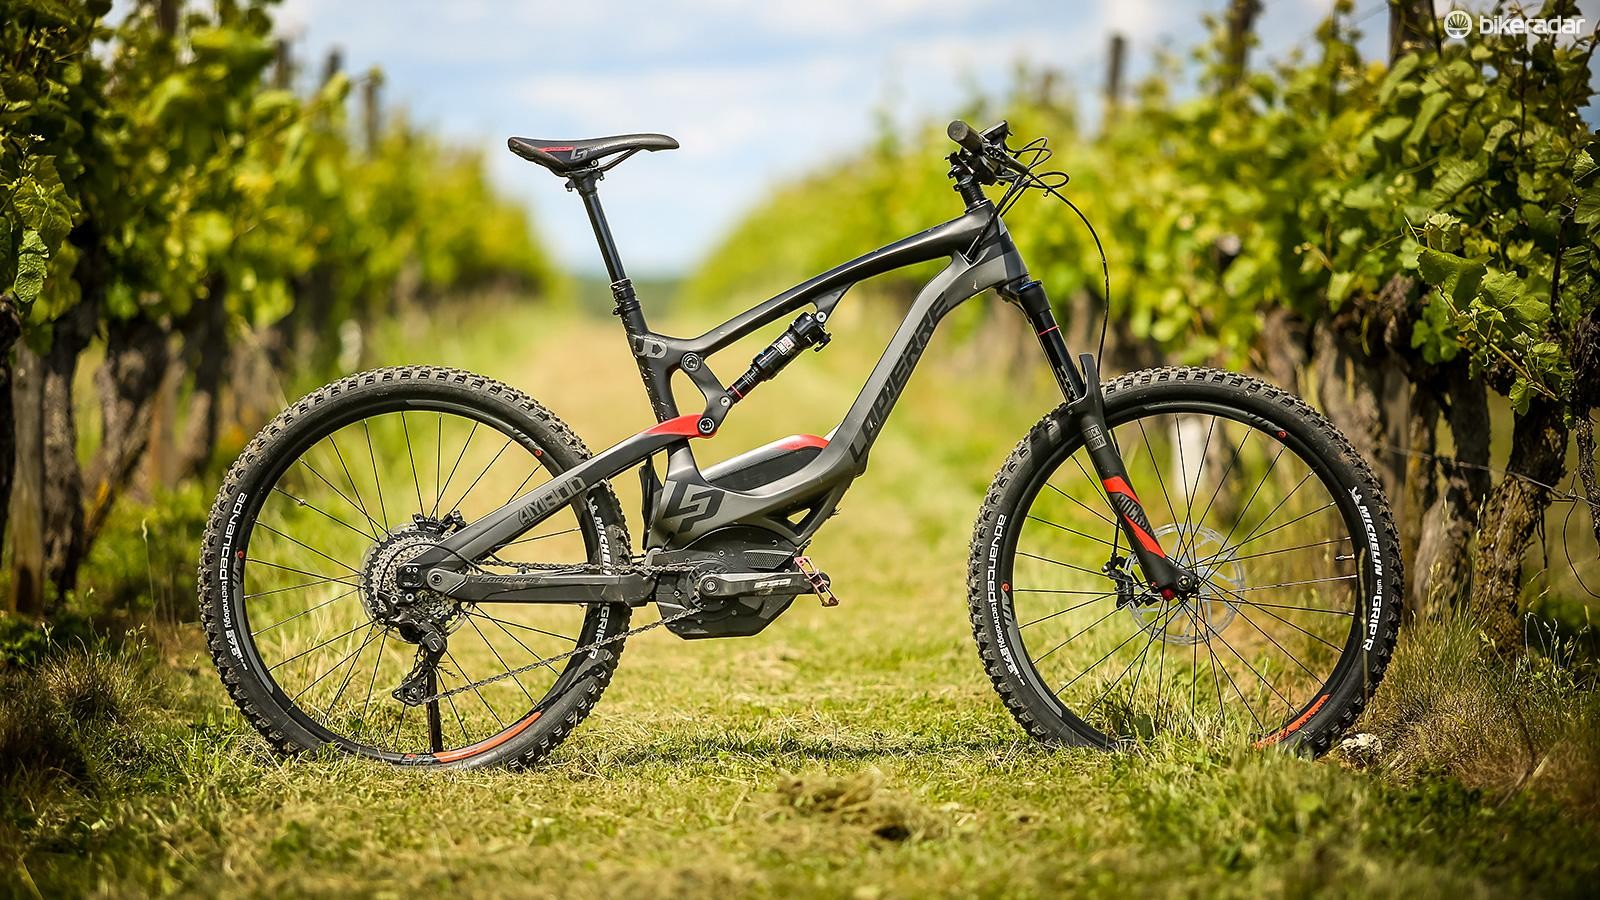 In a bid to dramatically improve the handling, Lapierre has created its first full carbon e-MTB, the Overvolt AM Carbon, allowing its designers to dramatically lower the position of the battery